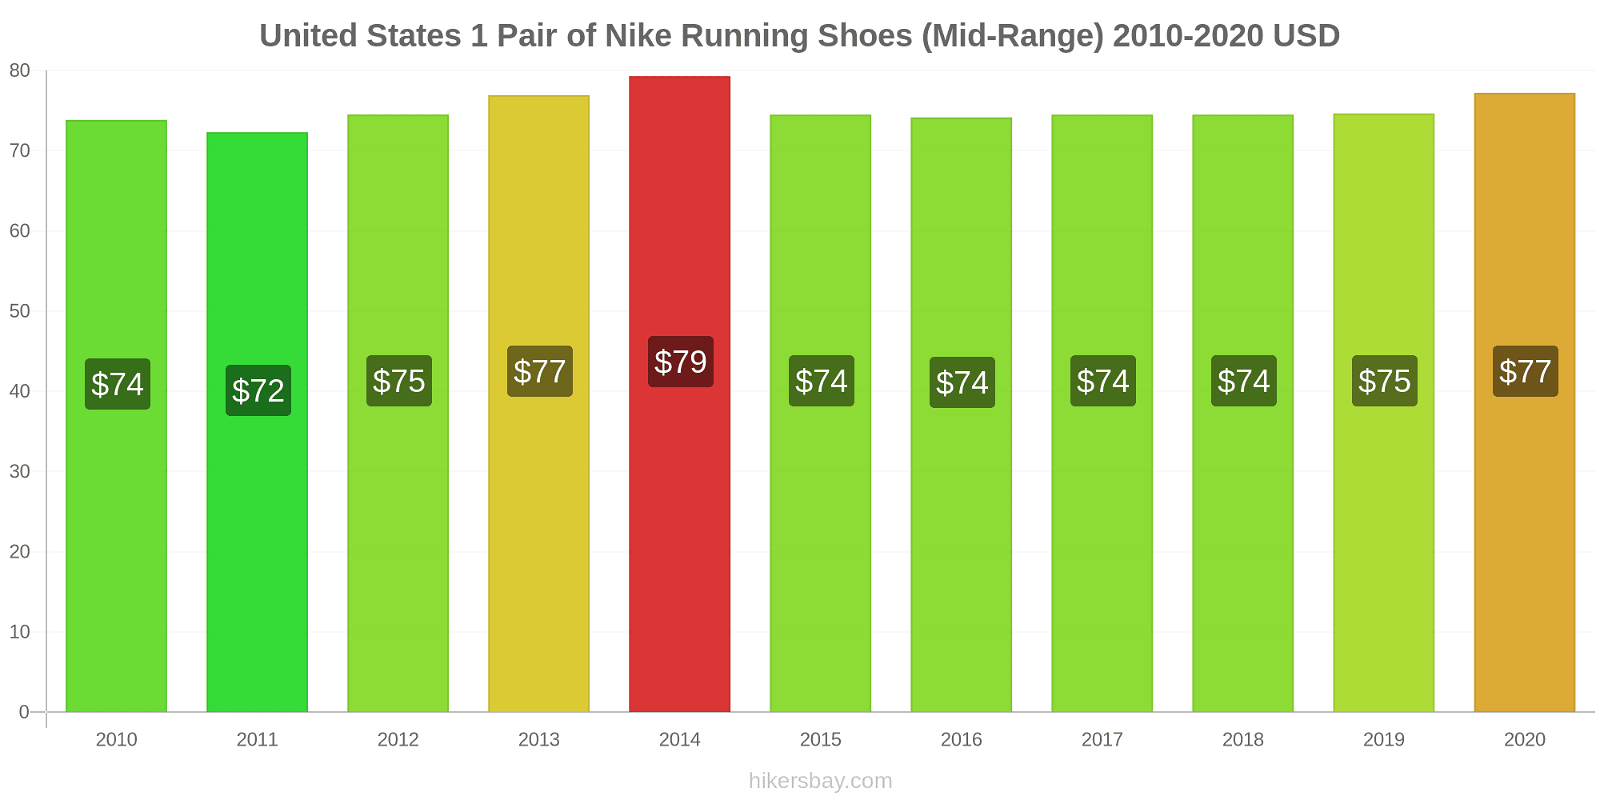 United States price changes 1 Pair of Nike Running Shoes (Mid-Range) hikersbay.com